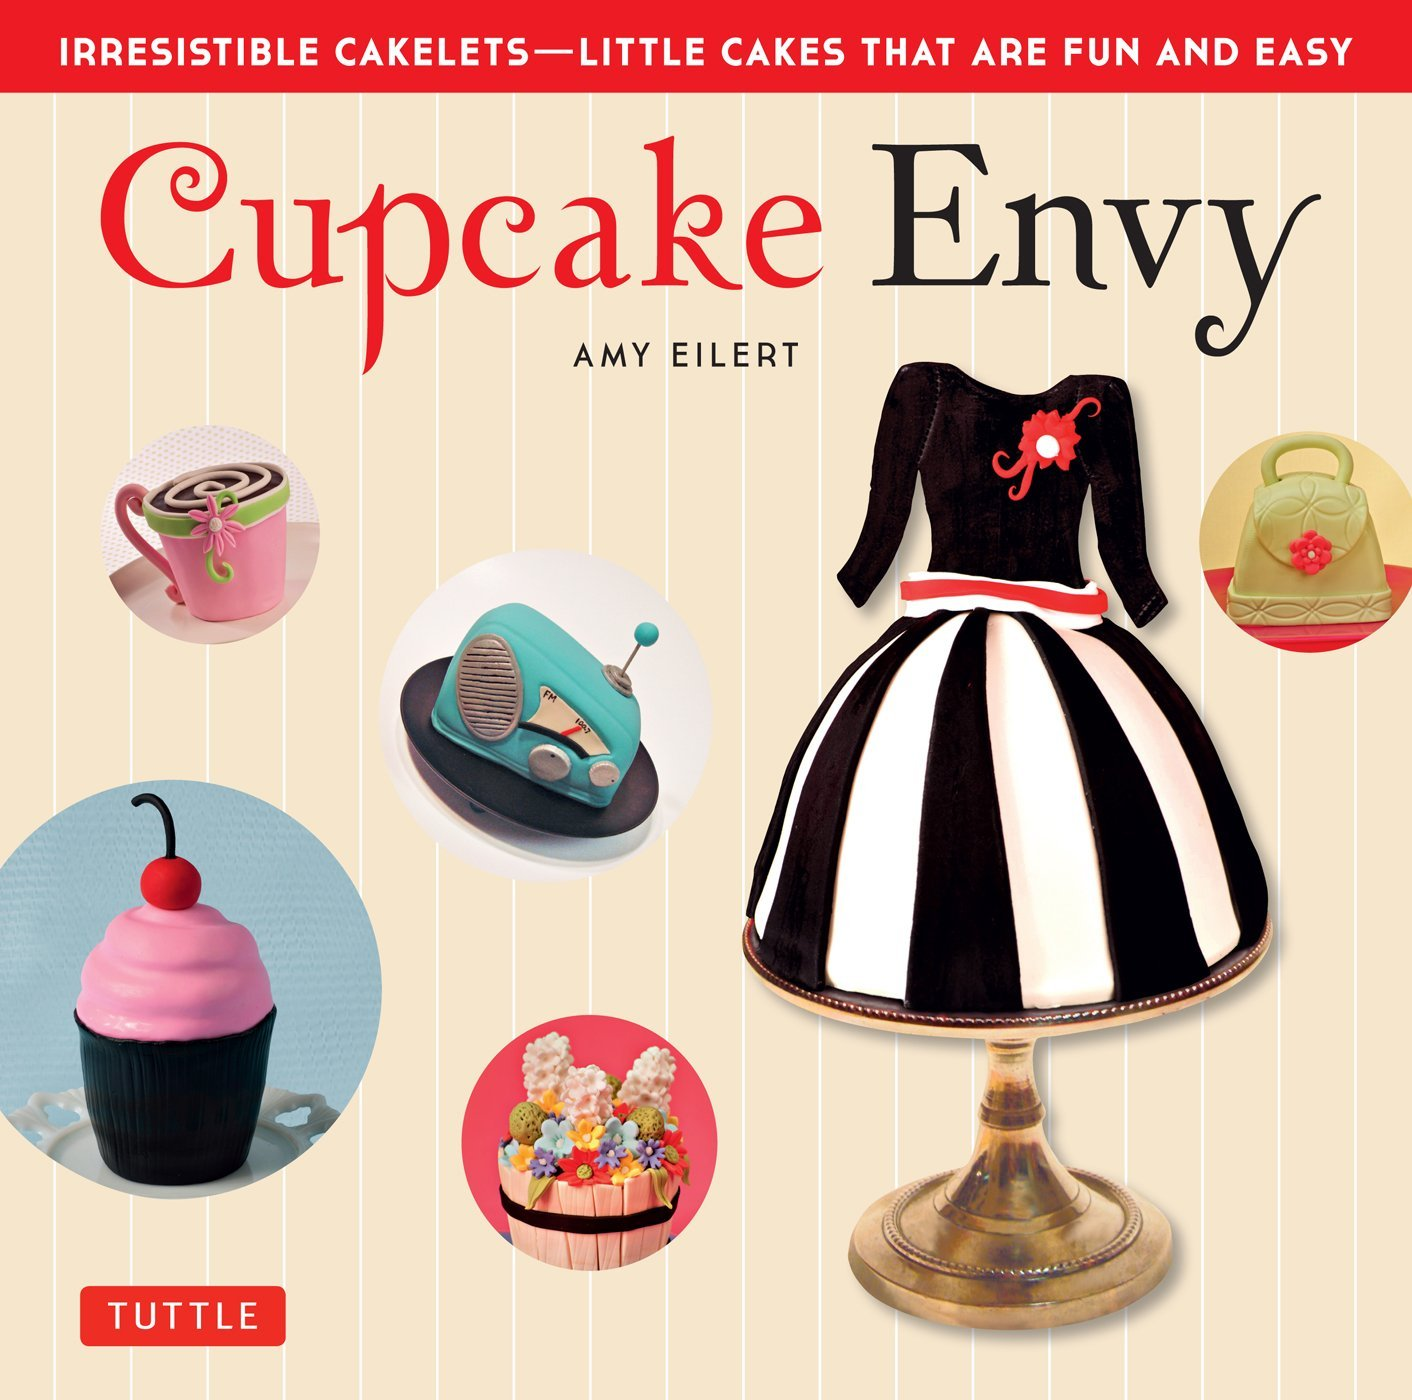 Cupcake Envy: Irresistible Cakelets - Little Cakes that are Fun and Easy free download